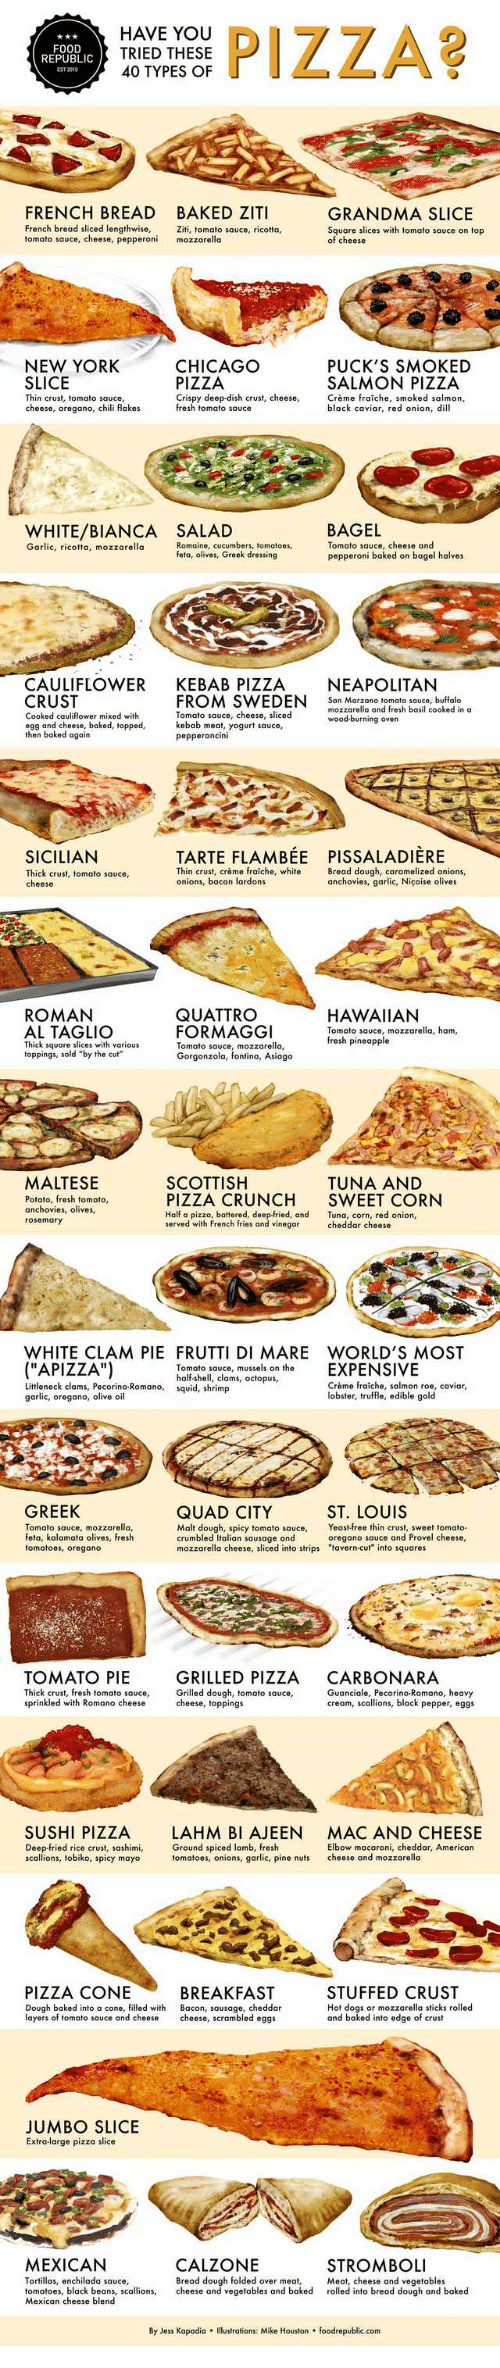 """Baked, Chicago, and Dogs: HAVE YOU  TRIED THESE  40 TYPES OF  A?  REPUBLIC  FRENCH BREAD BAKED ZITI  GRANDMA SLICE  Franch bread sliced lengthwise, Ziti, tomoto  tomato souce, cheese, pepperoni mozzarello  Square slices with tomato sauce on top  of cheese  NEW YORK  SLICE  Thin crust, tomato sauce,  cheese, oregano, chili flokes  CHICAGO  PIZZA  Crispy deep-dish crust, cheese, Creme fraiche, smoked salmon,  fresh tomato  PUCK'S SMOKED  SALMON PIZZA  black coviar, red onion, dil  WHITE/BIANCA  Garlie, ricotta, mozzarella  SALAD  Rongine, cucumbers, tongtoes,  feto, olives, Greek dressing  BAGEL  Tomato sauce, cheese and  l halves  CAULIFLOWER KEBAB PIZZA NEAPOLITAN  CRUST  FROM SWEDEN  mozzarelle and fresh basil cooked in  Cooked cauliflower mixed with  egg and cheese, boked, hopped,  Tomato souce, cheese, sliced  kebab  meat, yogurt souce,  SICILIAN  Thick crust, tomato sauce,  cheese  TARTE FLAMBÉE  Thin crust, crème fraiche, white  onions, bacon lardons  PISSALADIERE  Bread dough, caramalized onions,  anchovies, garlic, Niçoise olives  QUATTRO  ROMAN  AL TAGLIO  Thick squore slices with various  toppings, sold """"by the cut  HAWAIIAN  Tomato sauce, mozzarella, ham,  fresh  FORMAGGI  Tomato  SCOTTISH  MALTESE  Potato, fresh tomato,  TUNA AND  PIZZA CRUNCH  Half o pizze, boftered, deephried, and  served wiath French fries and vinegor  SWEET CORN  Tuna, corn, red onion,  cheddar cheese  rosemary  WHITE CLAM PIE FRUTTI DI MARE WORLD'S MOST  (""""APIZZA"""")  Tomato soauce, mussen theEXPENSIVE  halfshell, clams, octopus,  Littleneck clams, Pecorino Romano, squid, shrimp  garlic, oregano, olive oil  Crème fraiche, salmon roe, caviar  lobster, truffle, edible gold  ST. LOUIS  GREEK  Tomato  feto, kalamata olives, fresh  QUAD CITY  Male dough, spicy tomato souce, Yeast-free thin crust, sweet tomato  crumbled ltalian sausage and  mozzarella cheese, sliced into strips """"lavern-cuf"""" into squores  oregono souce and Provel cheese,  oregano  TOMATO PIE  GRILLED PIZZA CARBONARA  Thick cr"""